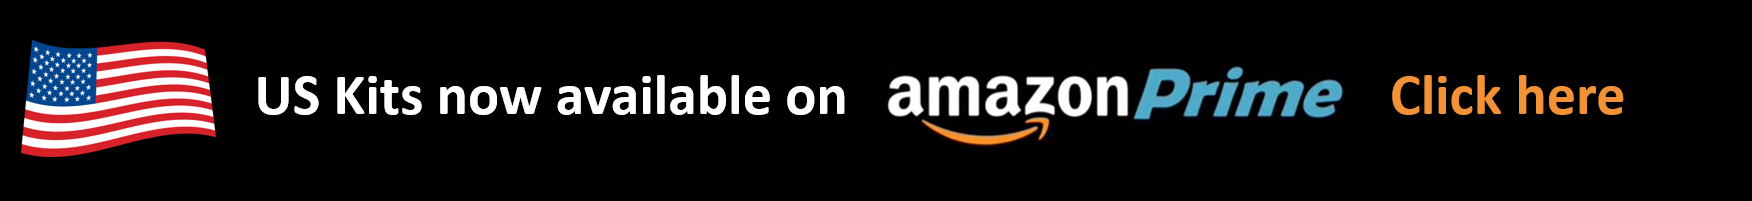 amazon-banner-for-website.png